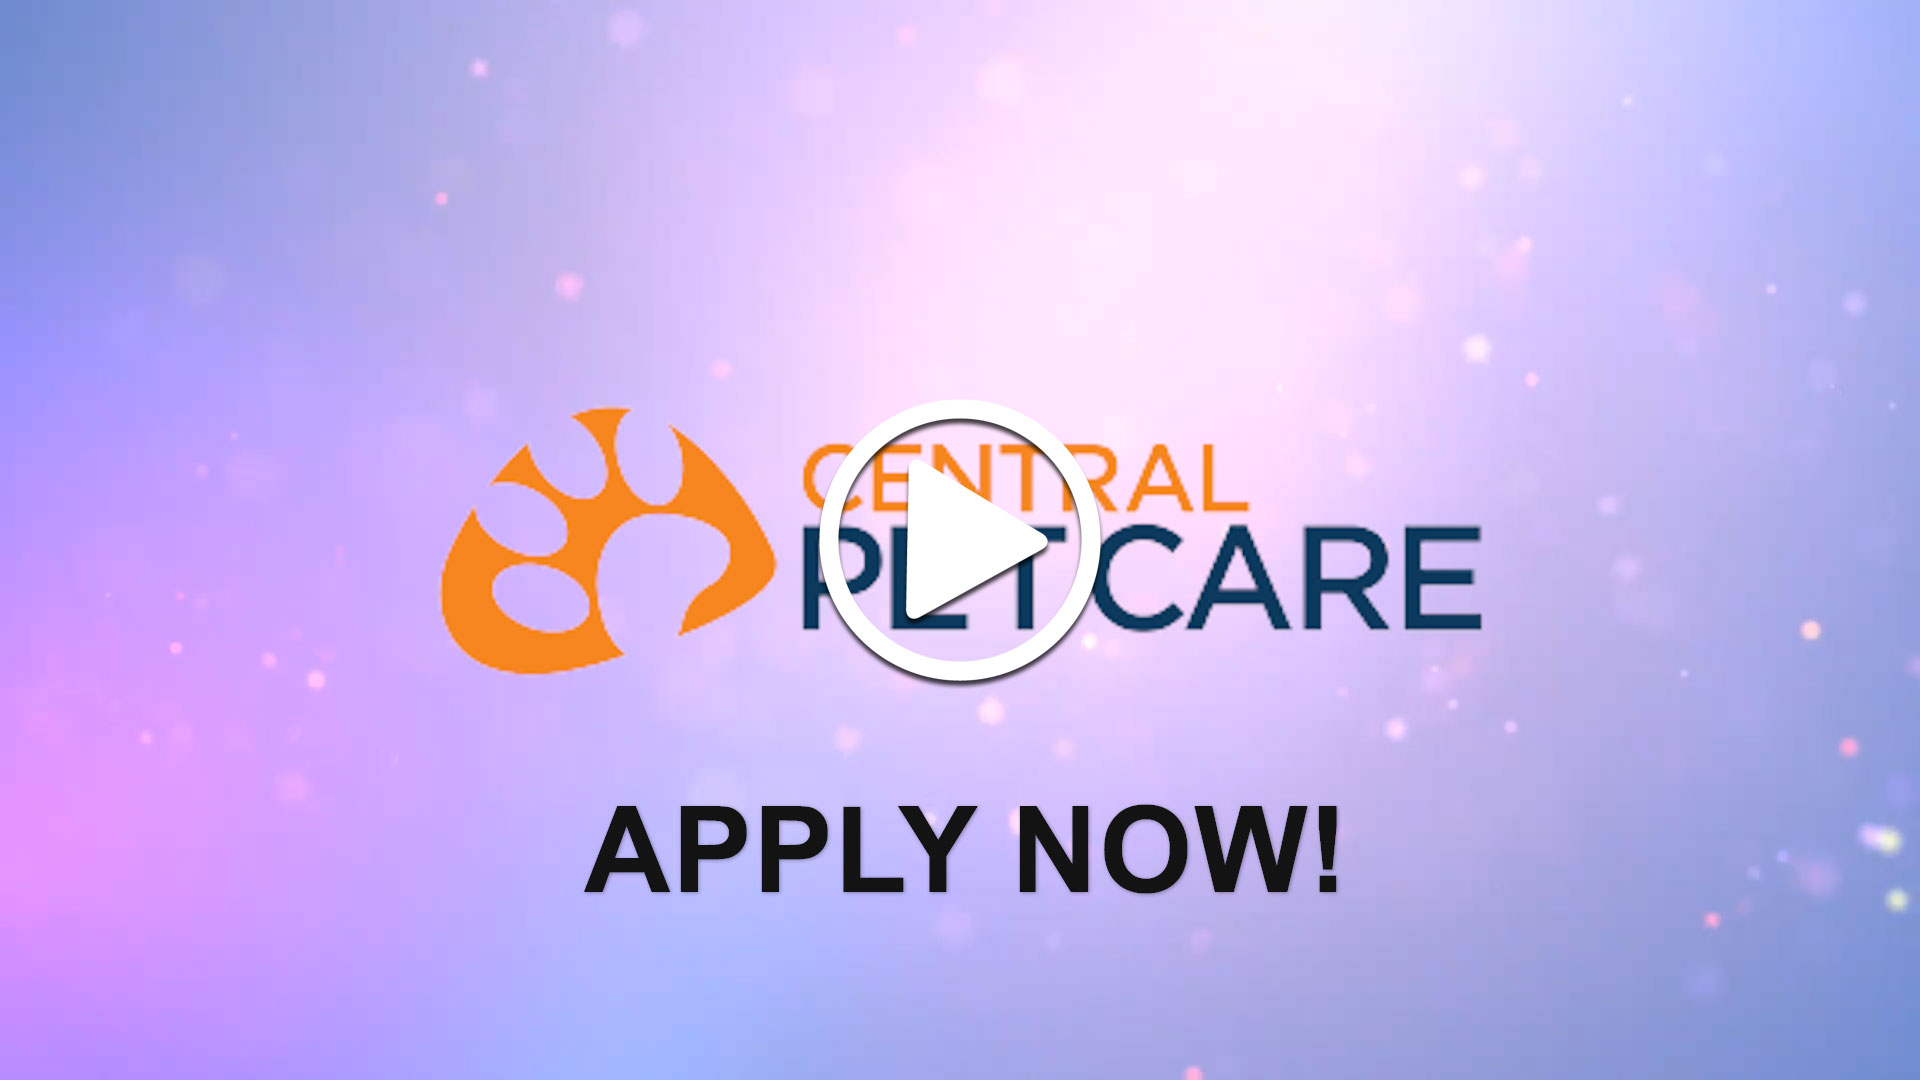 Watch our careers video for available job opening Doctor of Veterinary Medicine in Carthage, MO, USA